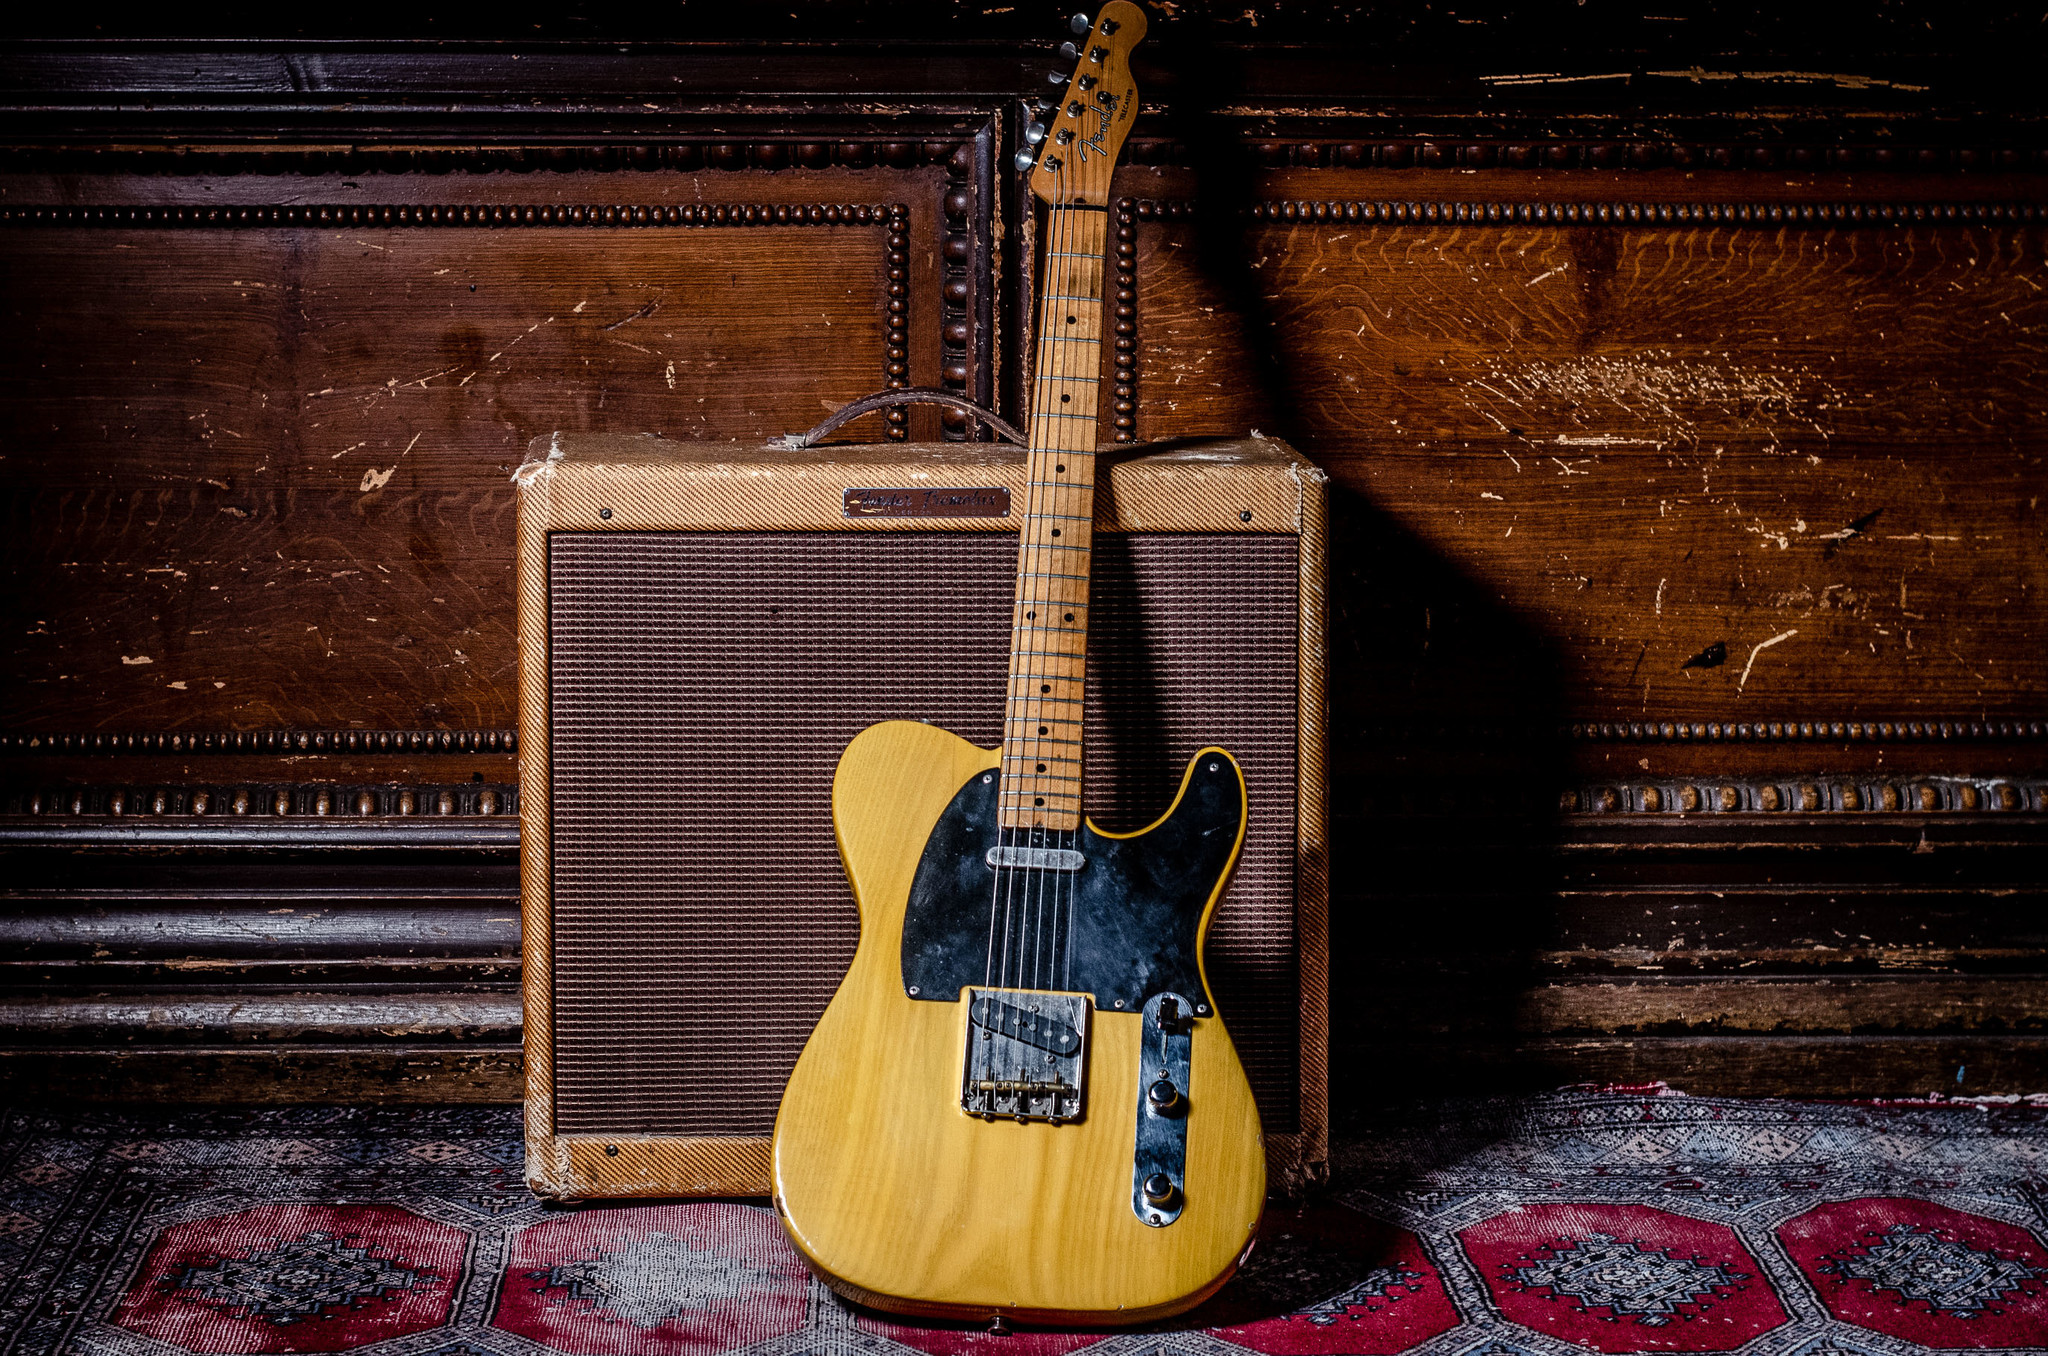 The Fender Telecaster: From Boat Paddle to Must-Have Axe